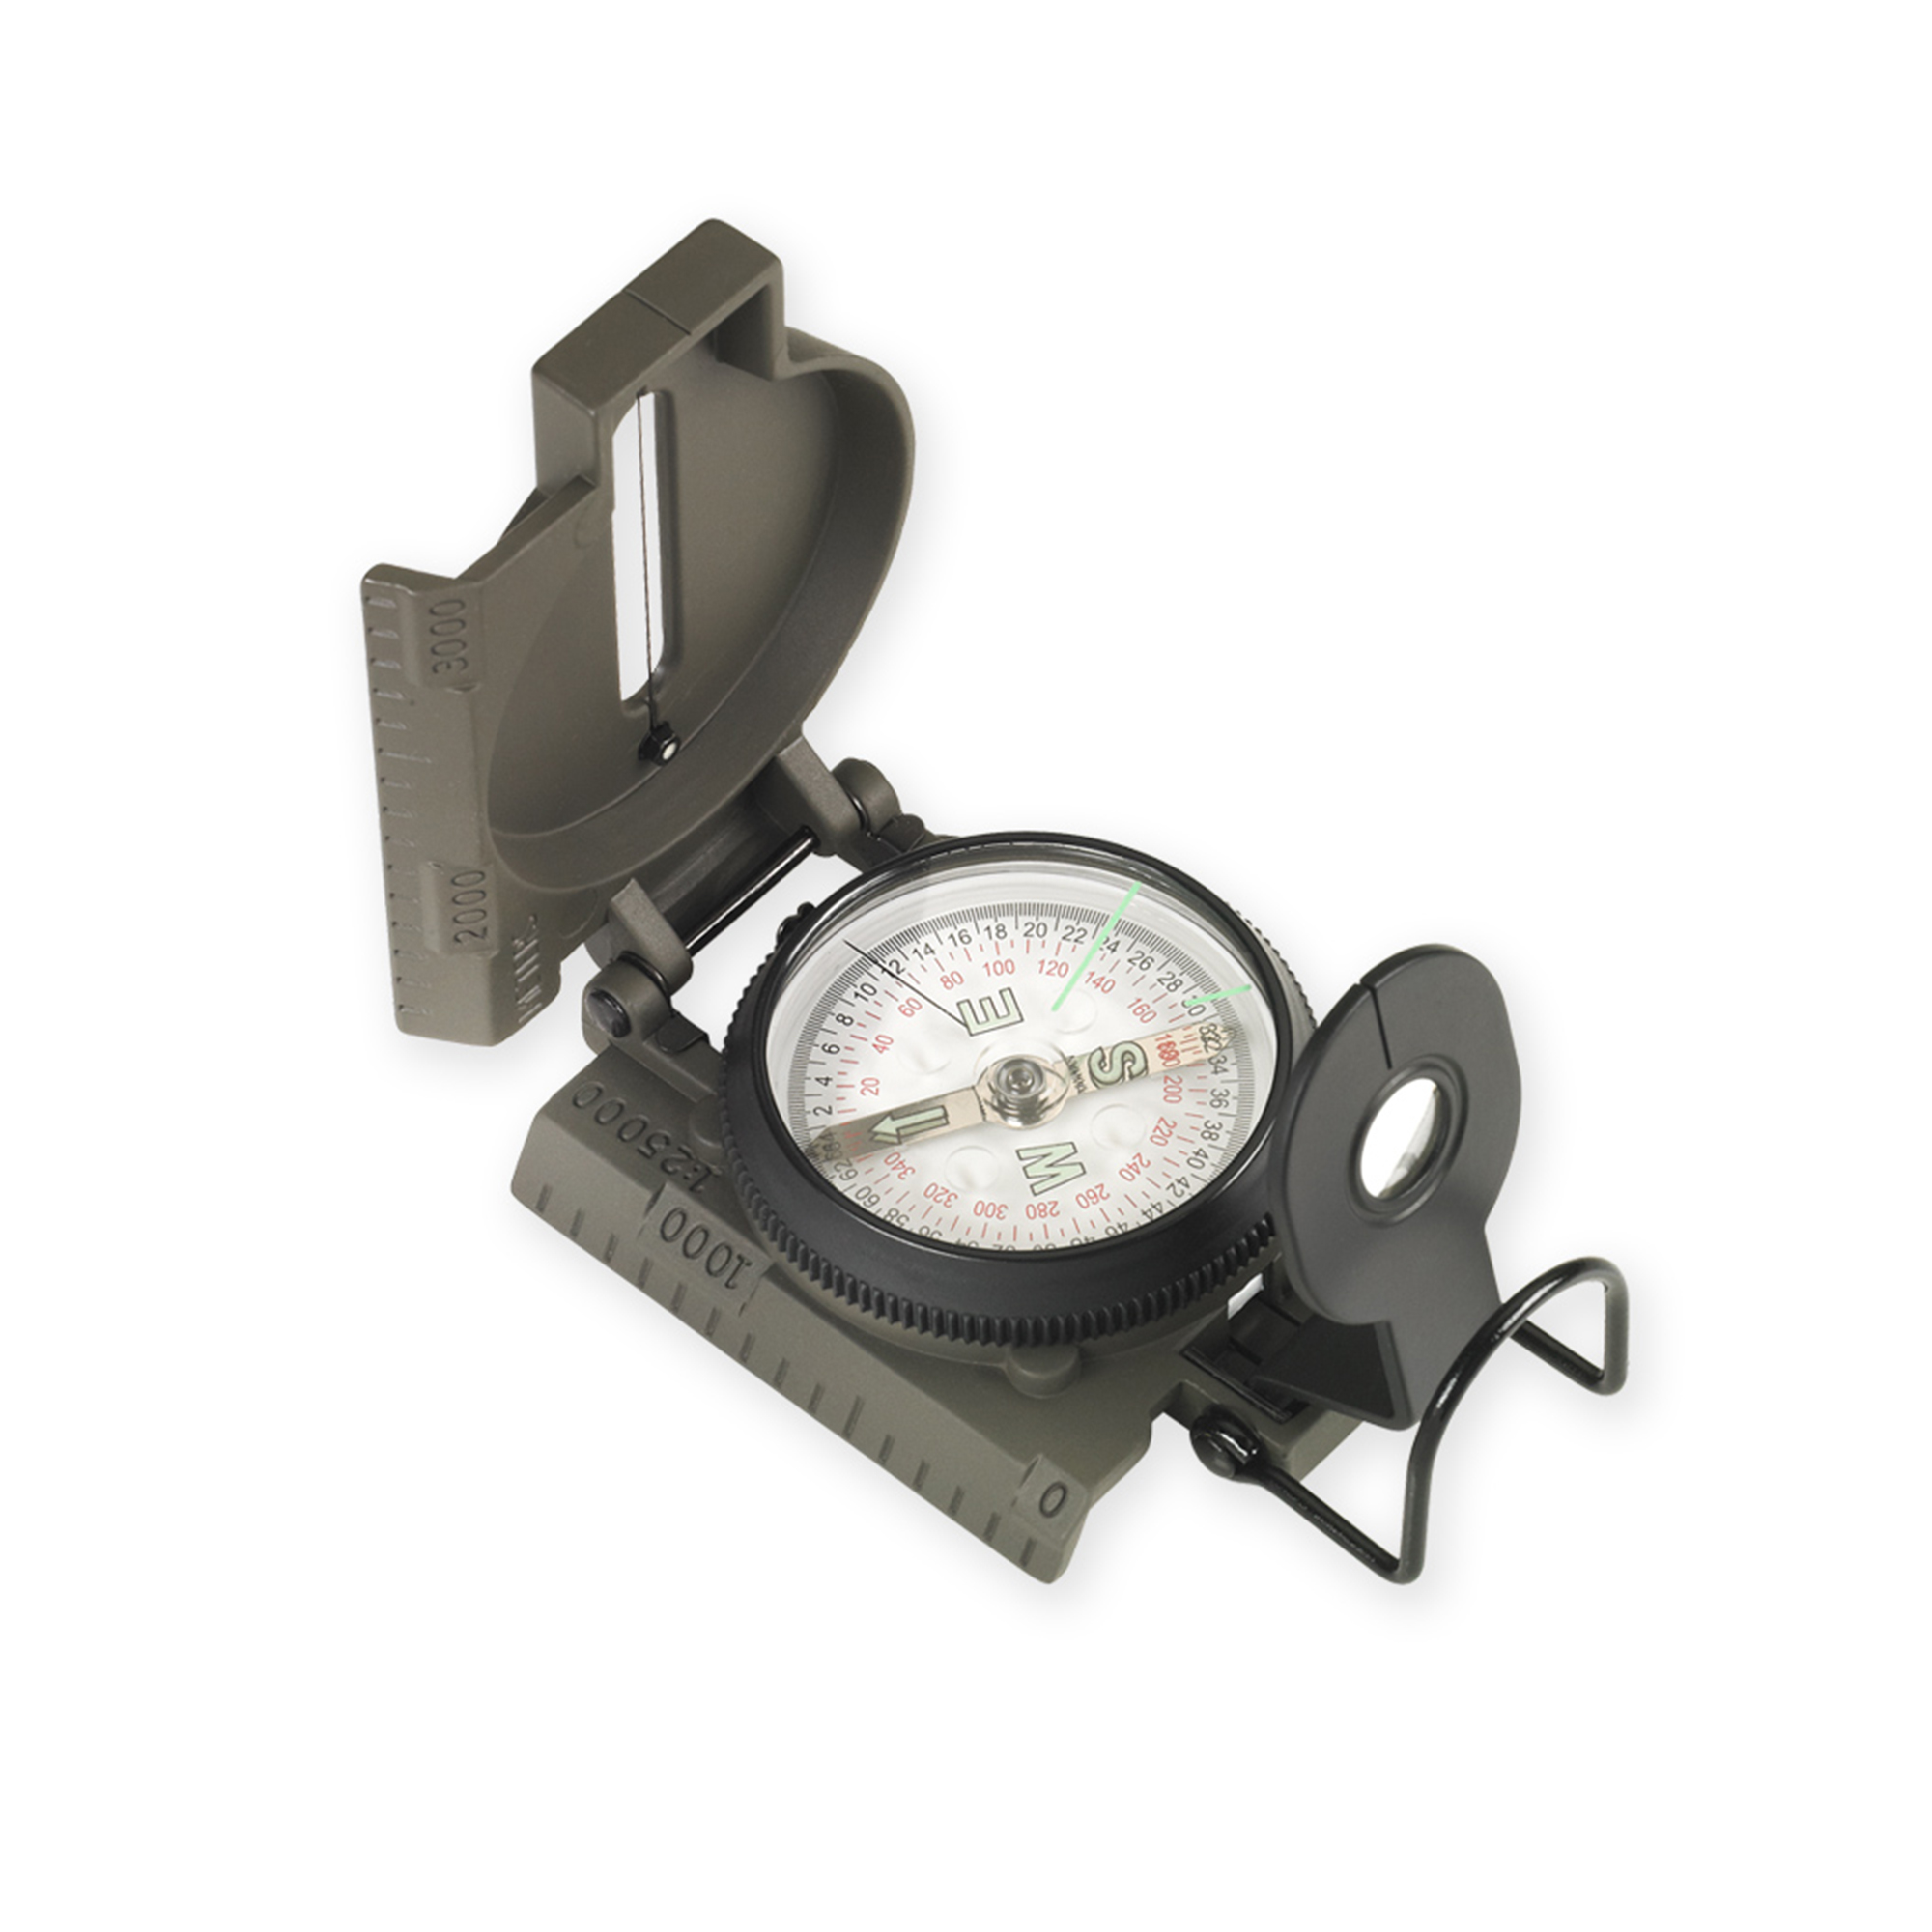 Proforce Equipment Compass NDūR Engineer Directional with Metal Case by Proforce Equipment